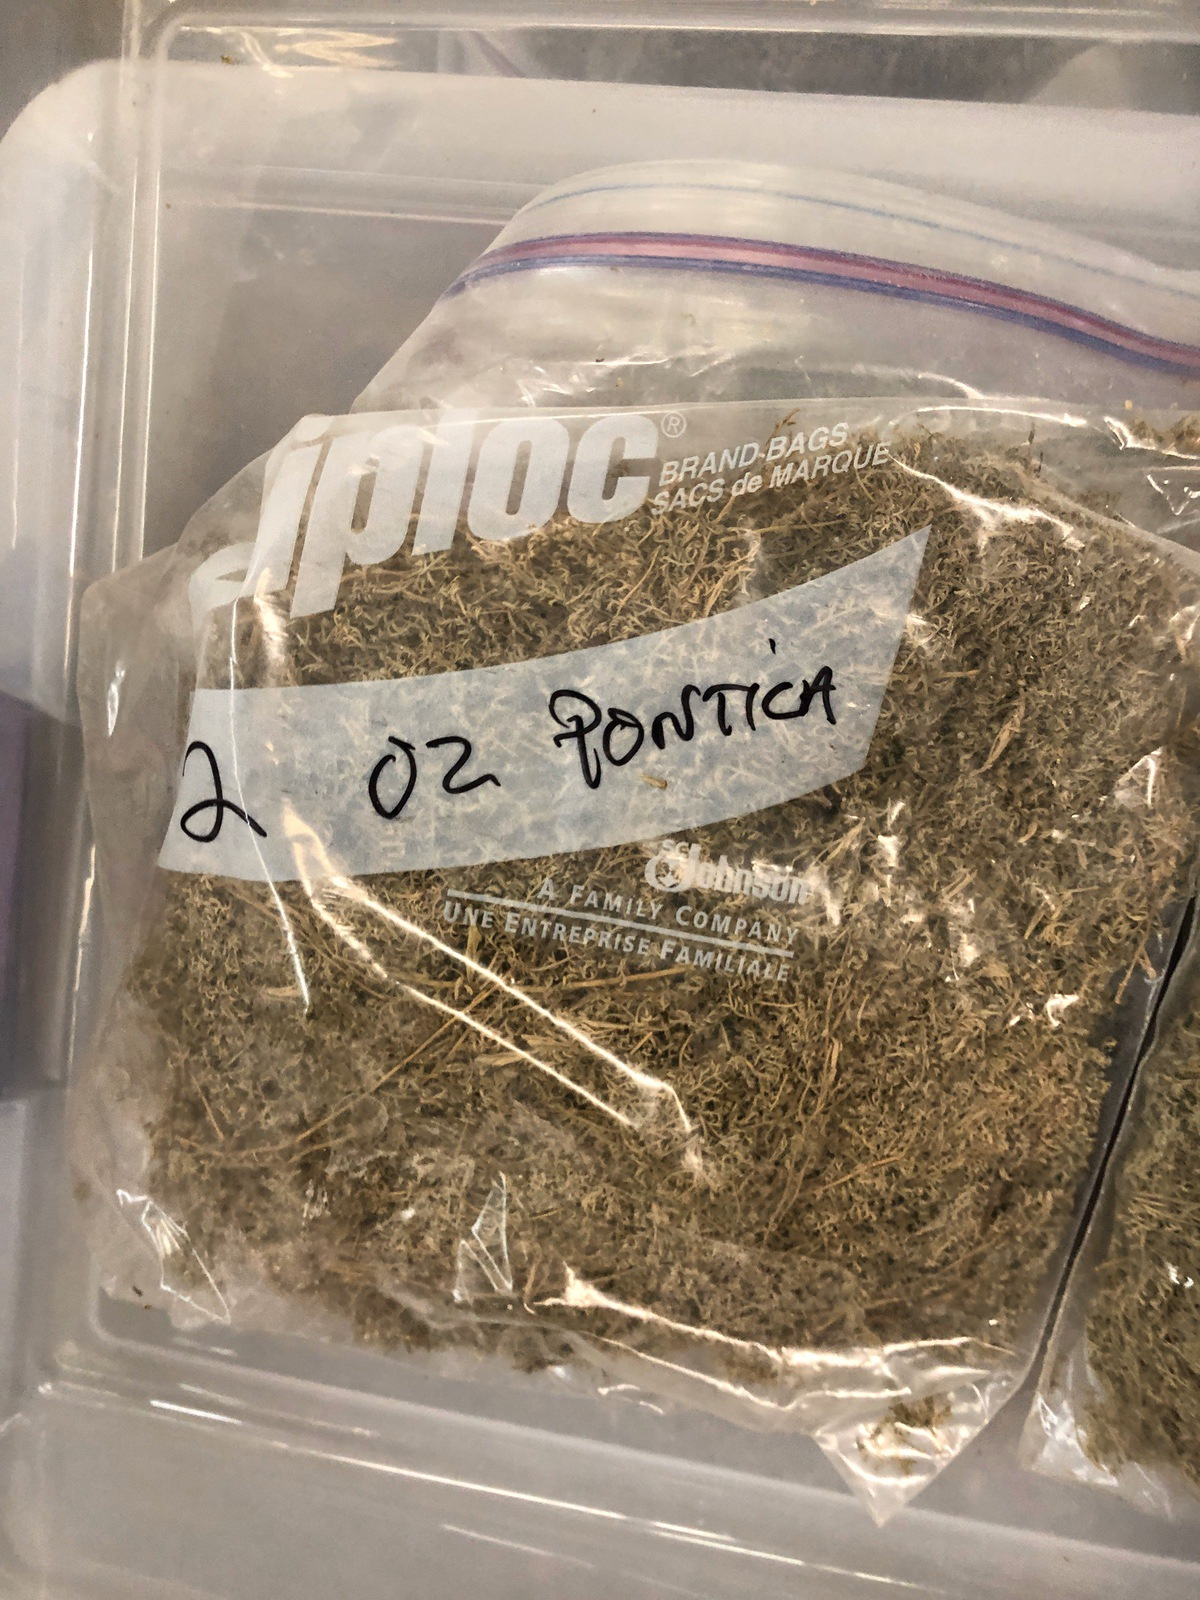 Lot of Herbs and Botanicals: Ponitica, Wormwood Herb C/S (Weight to be Provided | Rig Fee: $20 or HC - Image 3 of 14